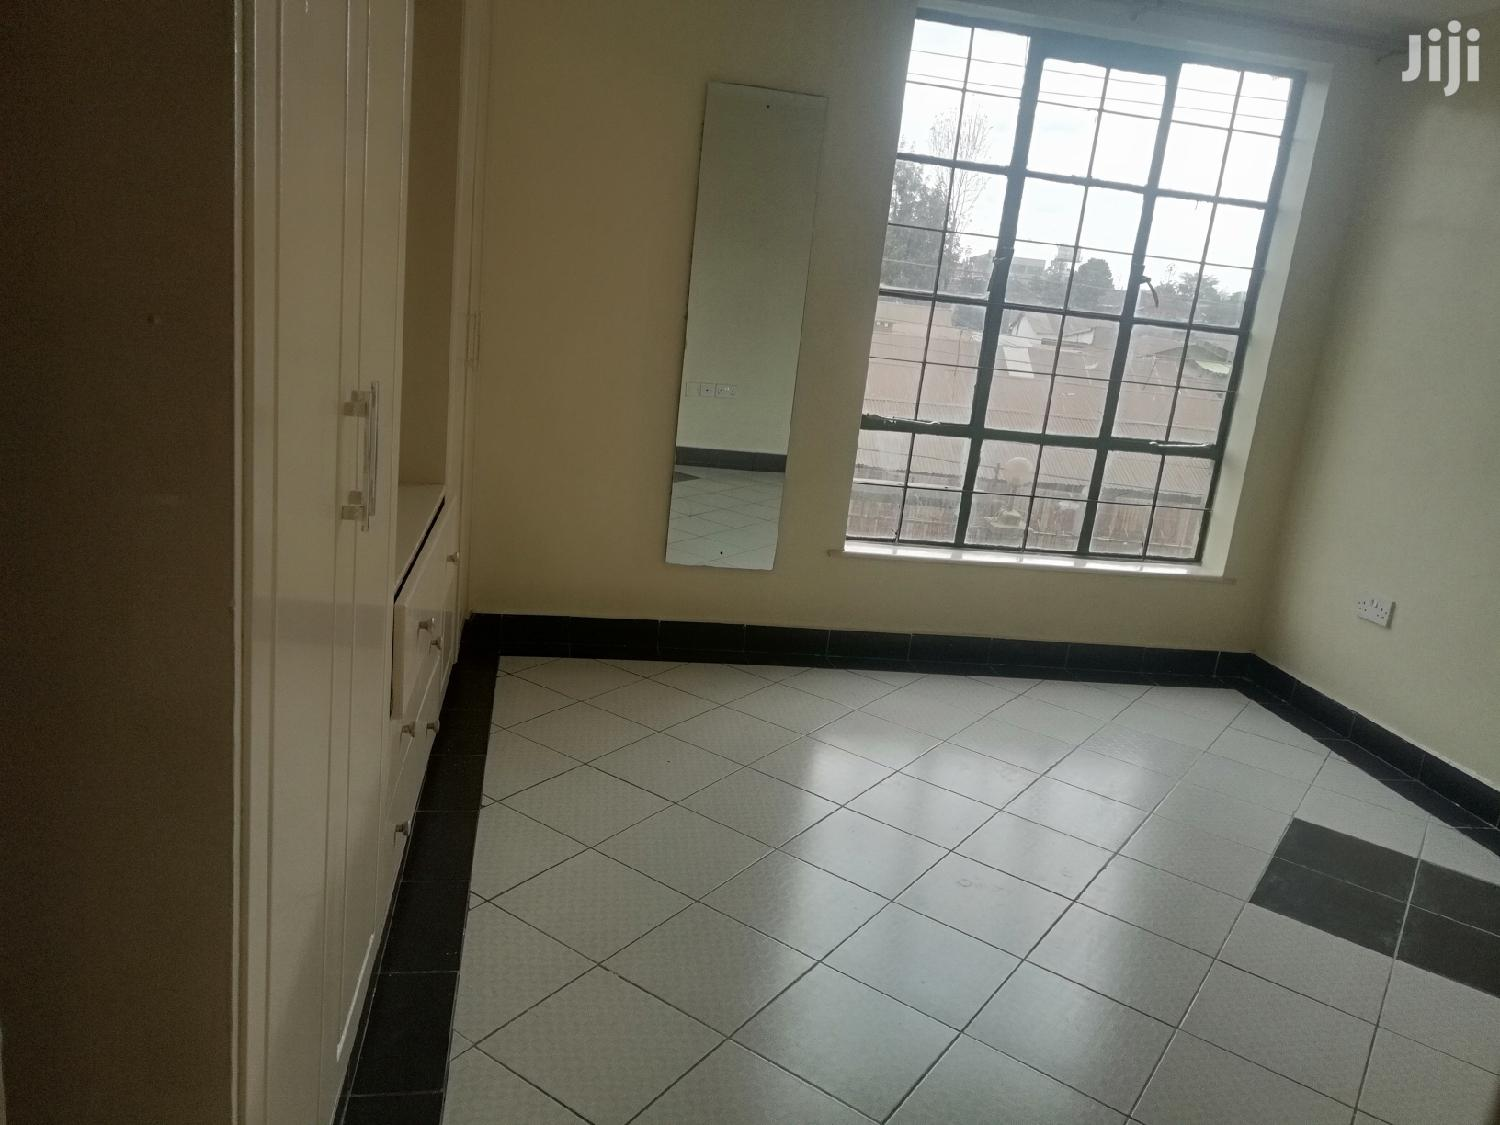 Property World, 2brs Apartment Master En-Suite and Secure   Houses & Apartments For Rent for sale in Lavington, Nairobi, Kenya